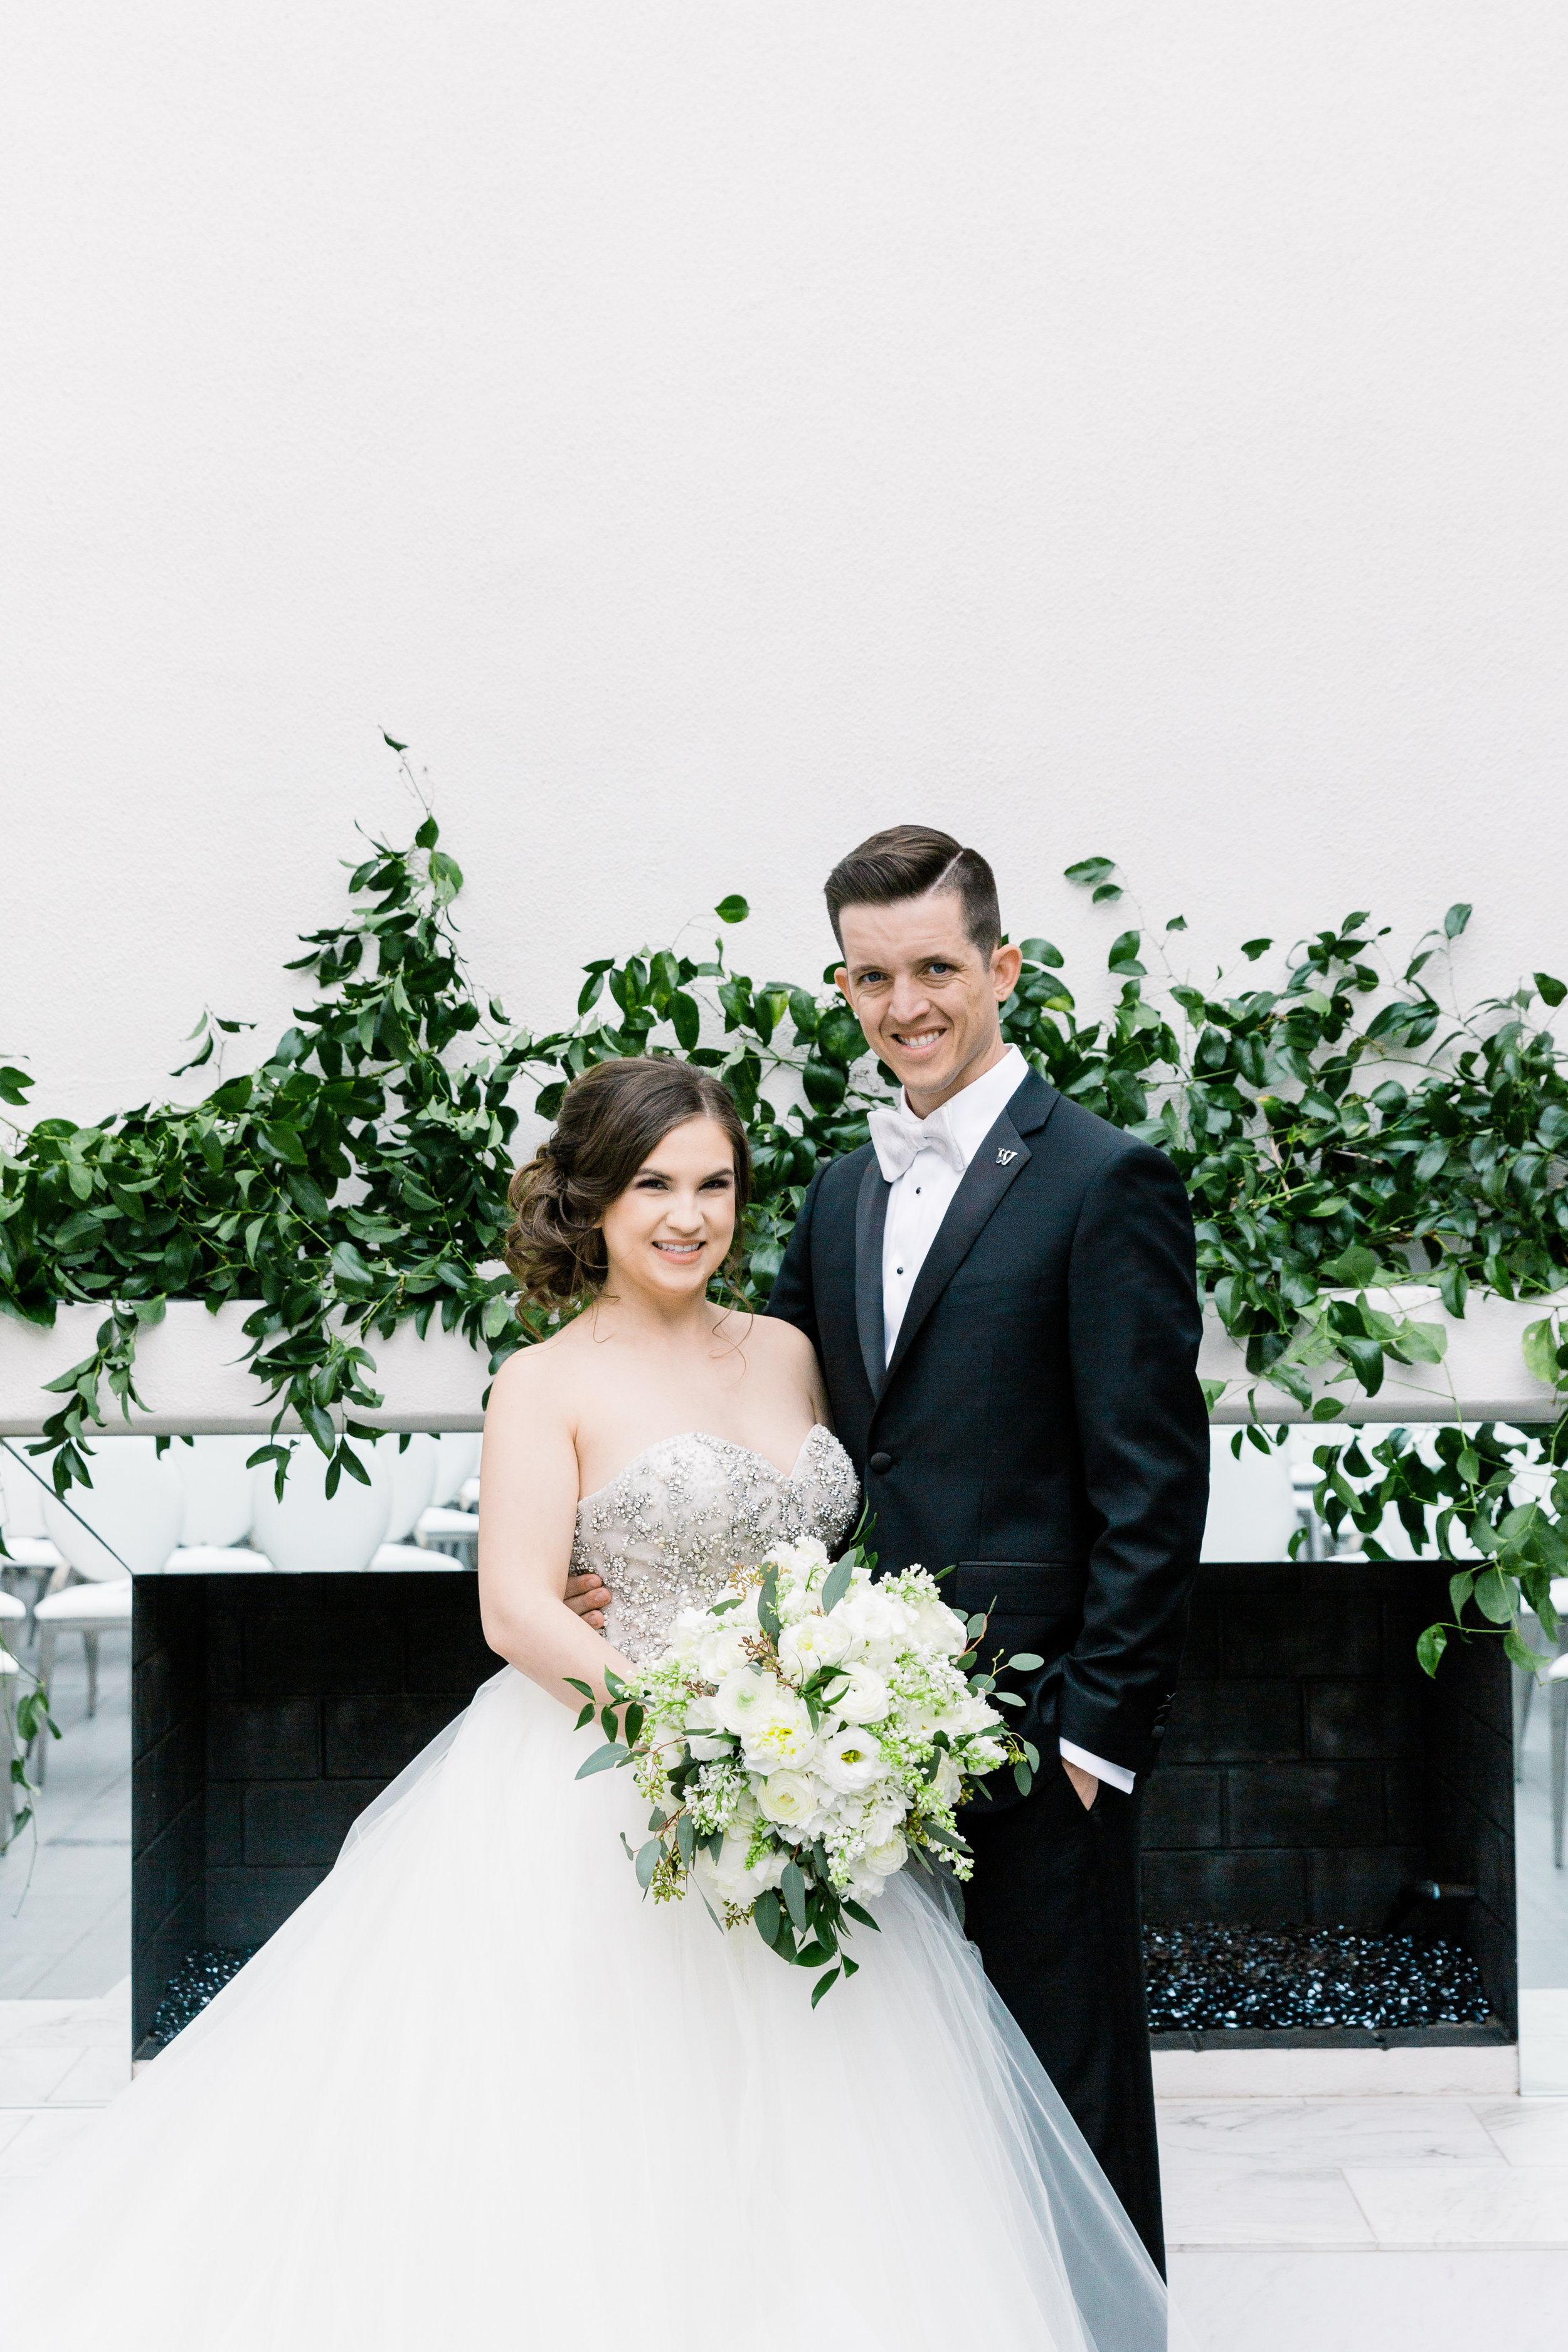 Taylor_and_Will_Soho63_BlackTieWedding-Andrew_and_Ada_Photography_2019-3620.jpg